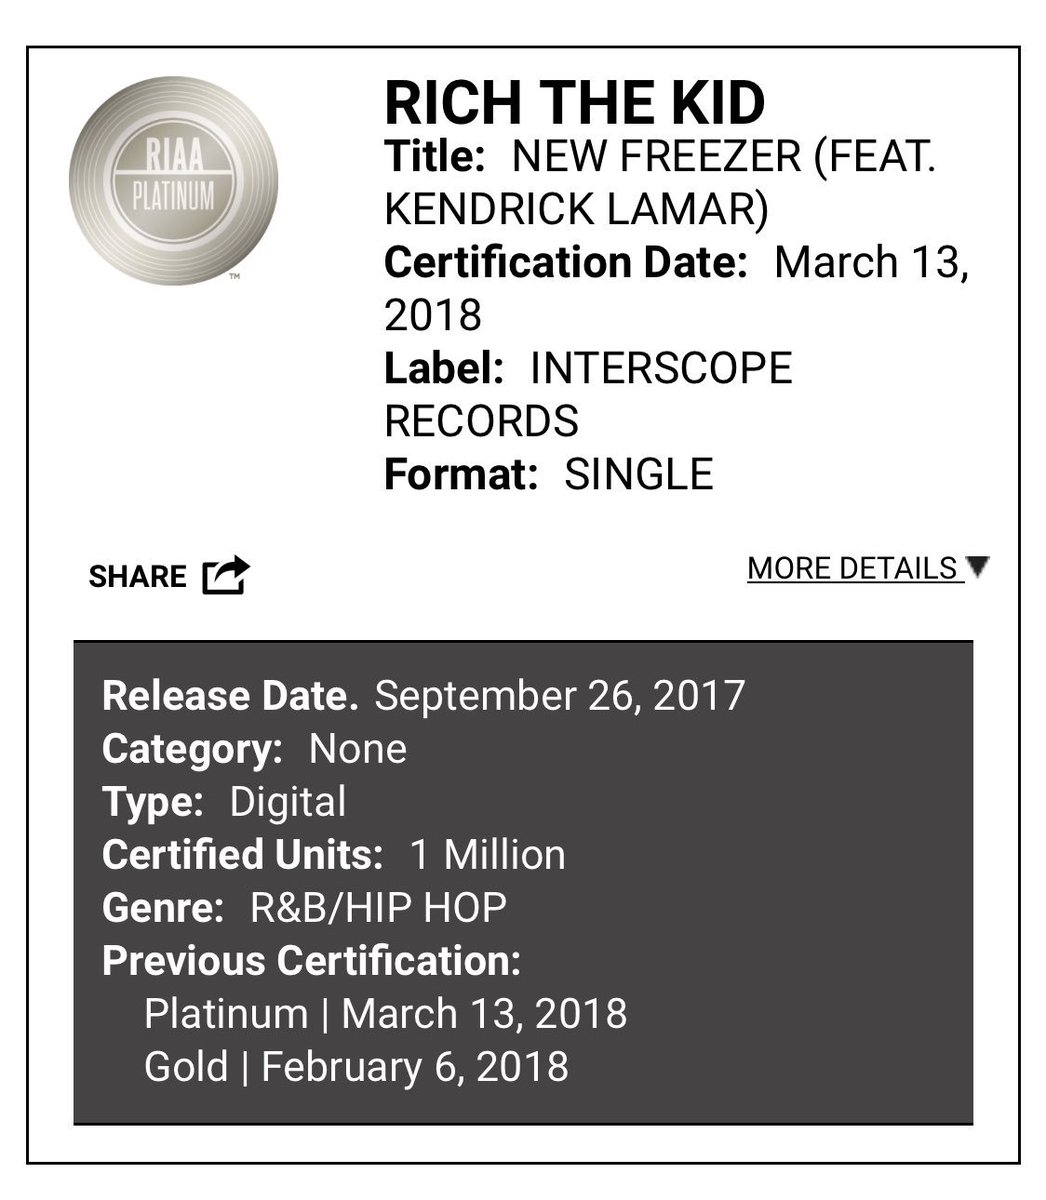 "Rich The Kid ""new freezer"" ft Kendrick Lamar is now certified platinum. Is this song 🔥🔥 or 💩💩"